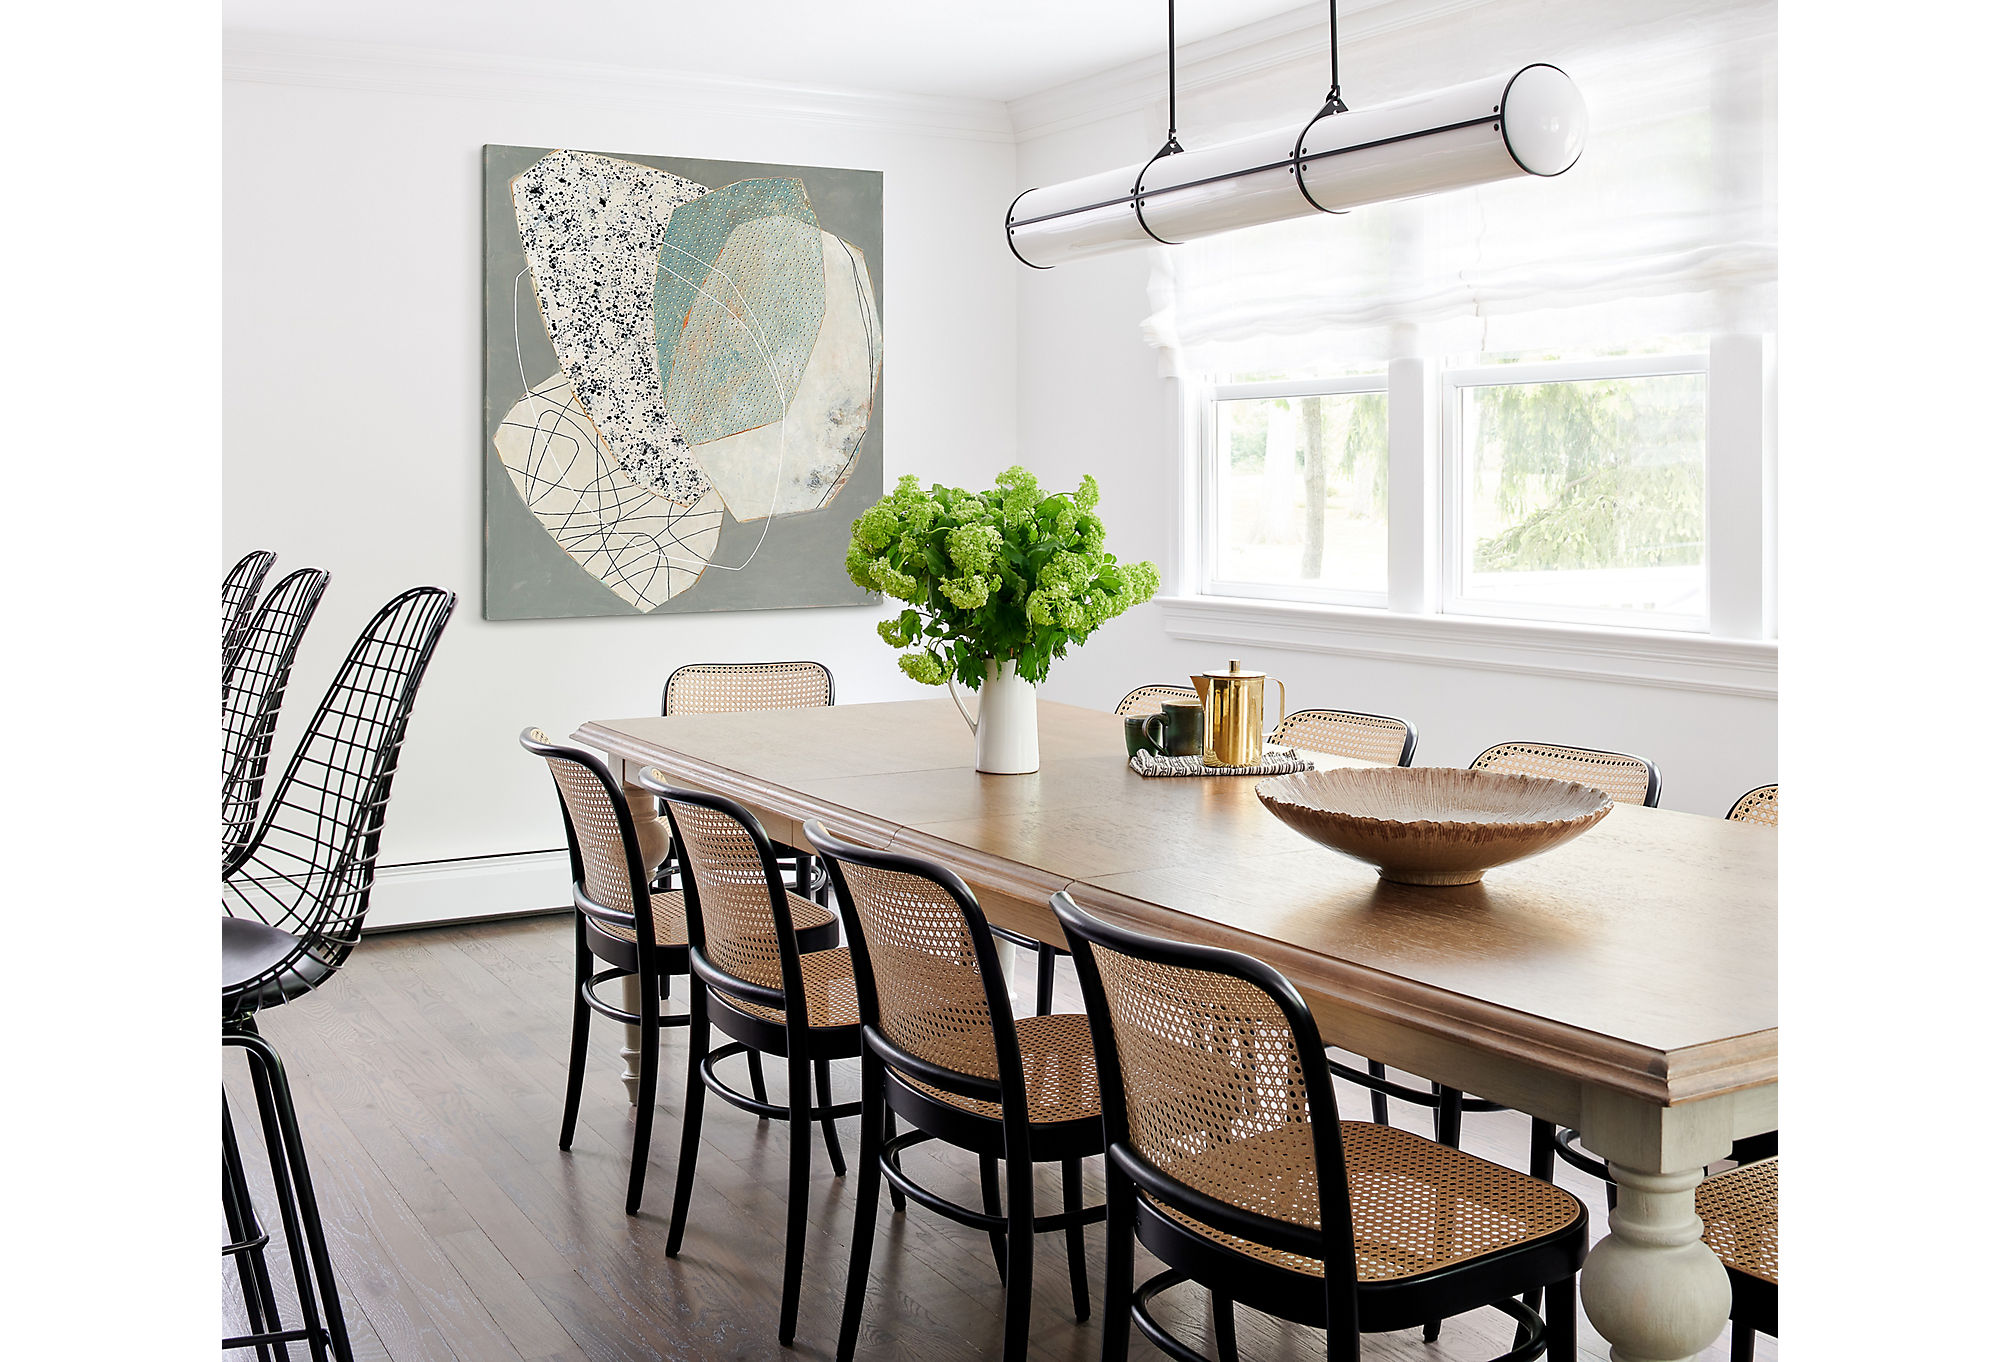 The homeowners have a large immediate family and love to entertain. Tina found a chic farmhouse-style dining table that would seat the entire family for a casual meal. Theart at the head of the table brings in the modern aesthetic.